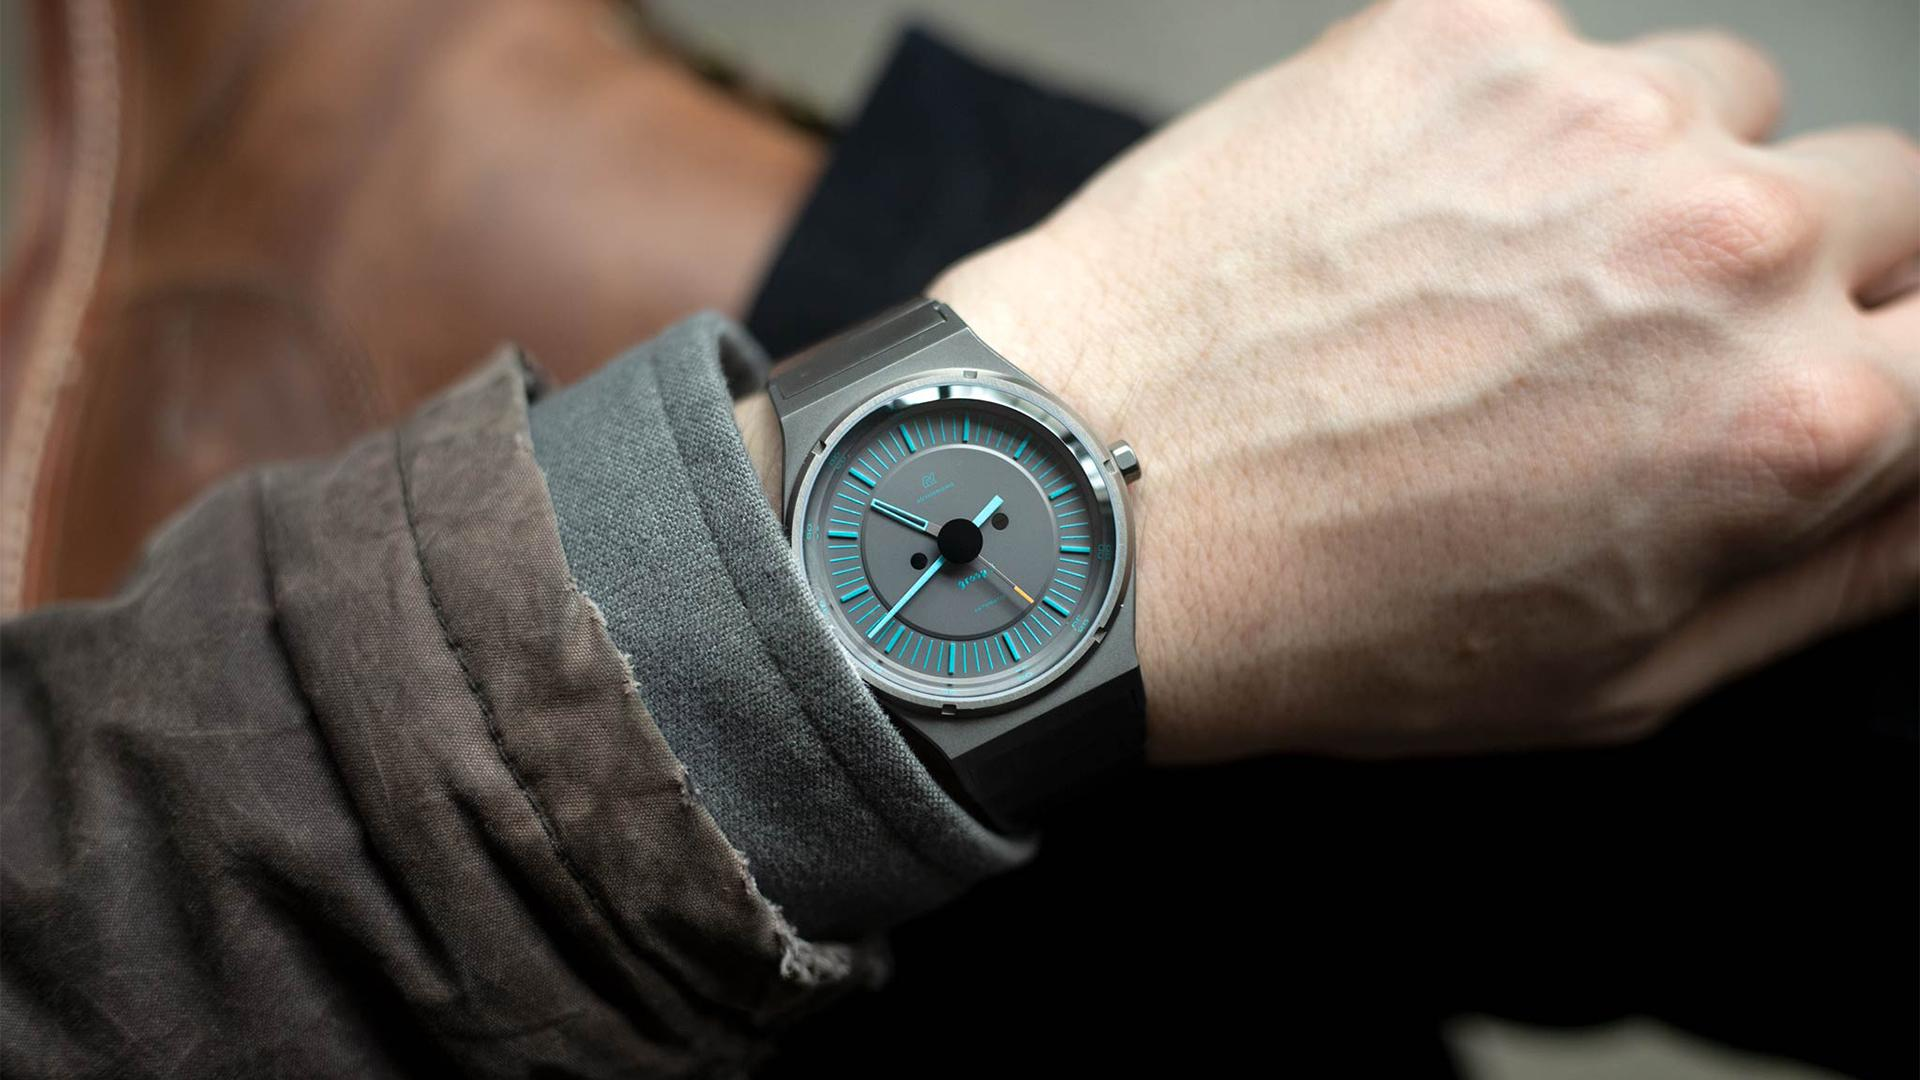 Autodromo Group B Series 2, best car-inspired watches